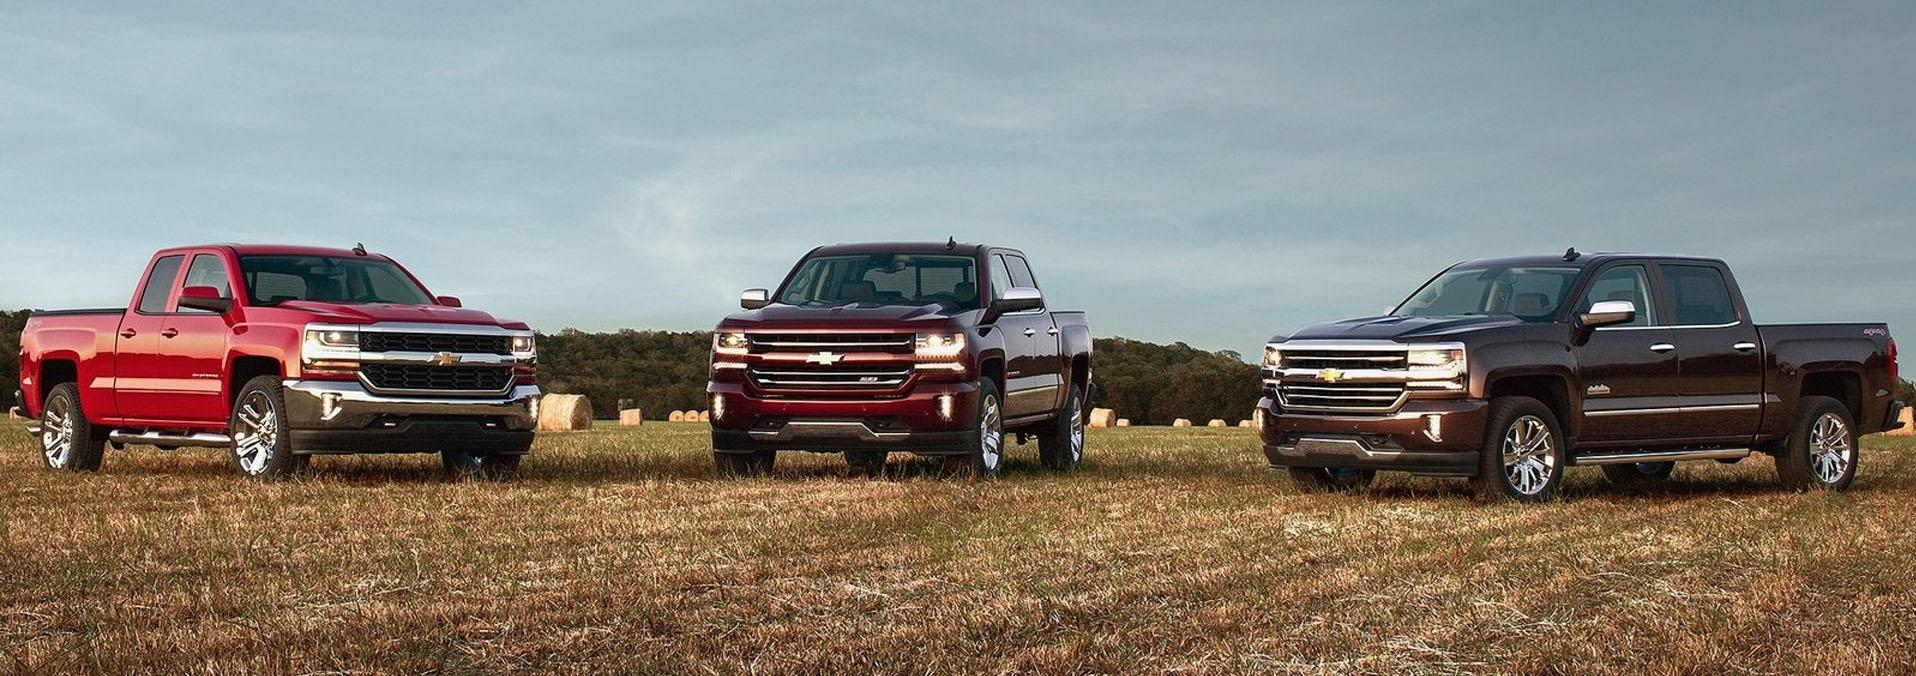 shop our virtual showroom of used cars trucks and suvs online then stop by for a test drive